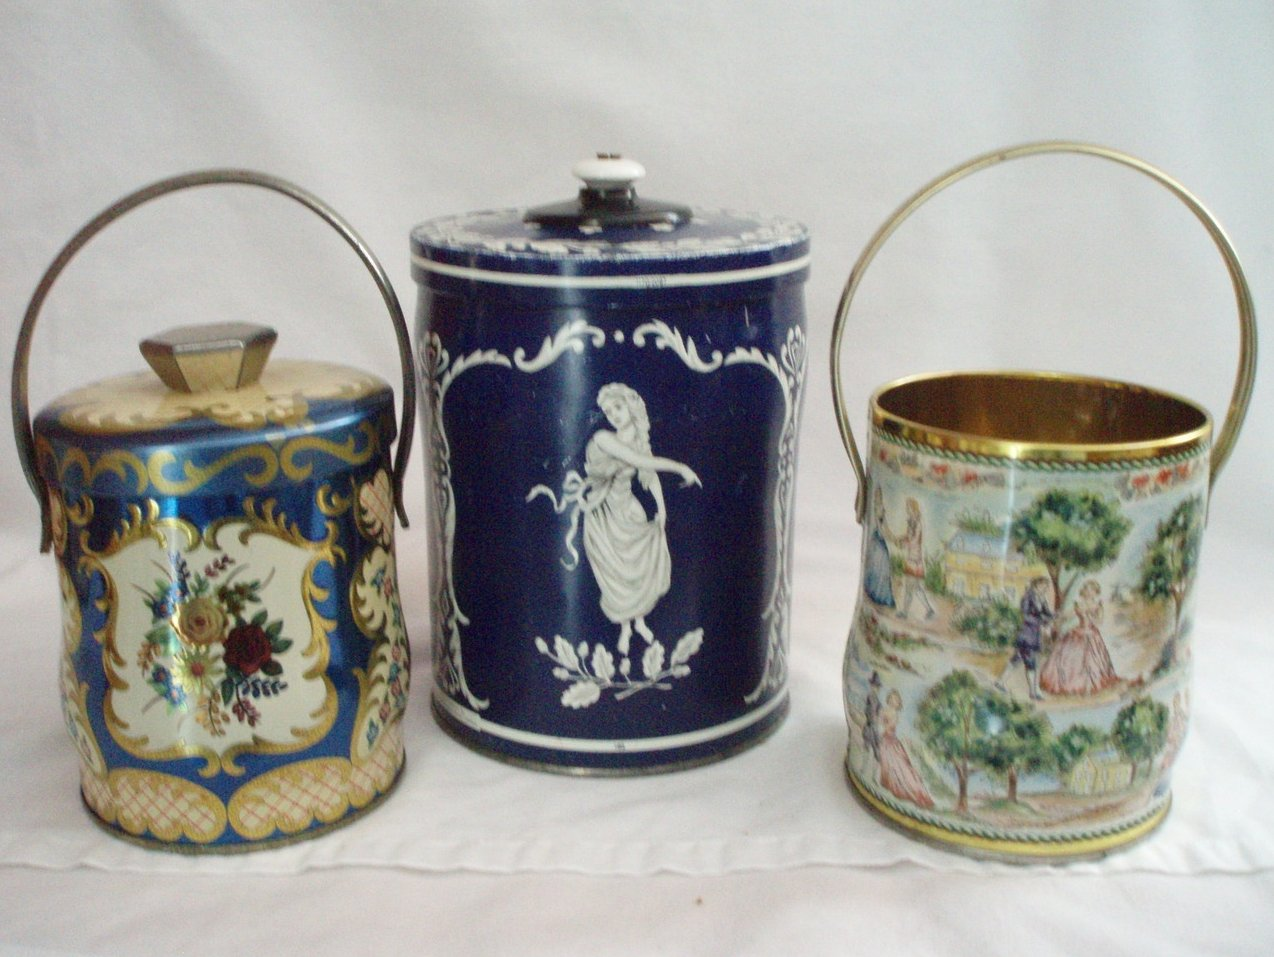 3 Tins Wedgwood and Murray Allen vintage